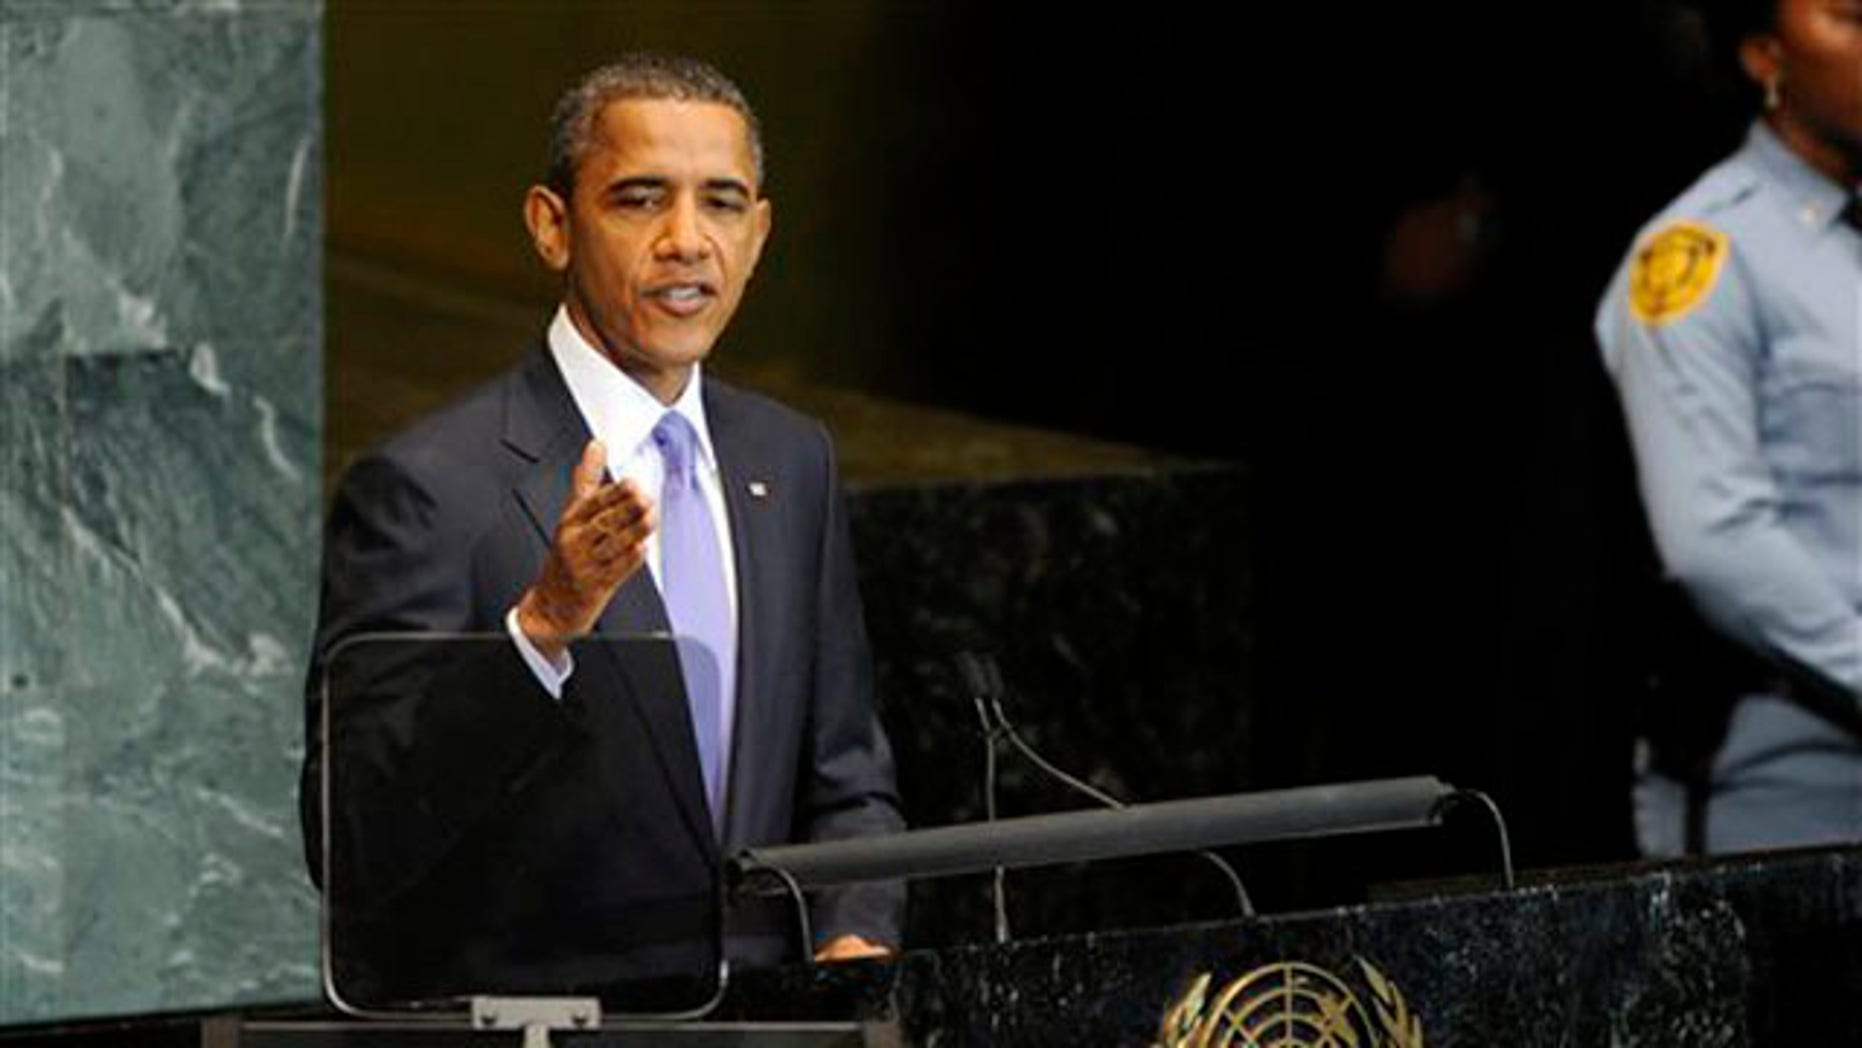 President Obama addresses the United Nations General Assembly Sept. 23. (AP Photo)